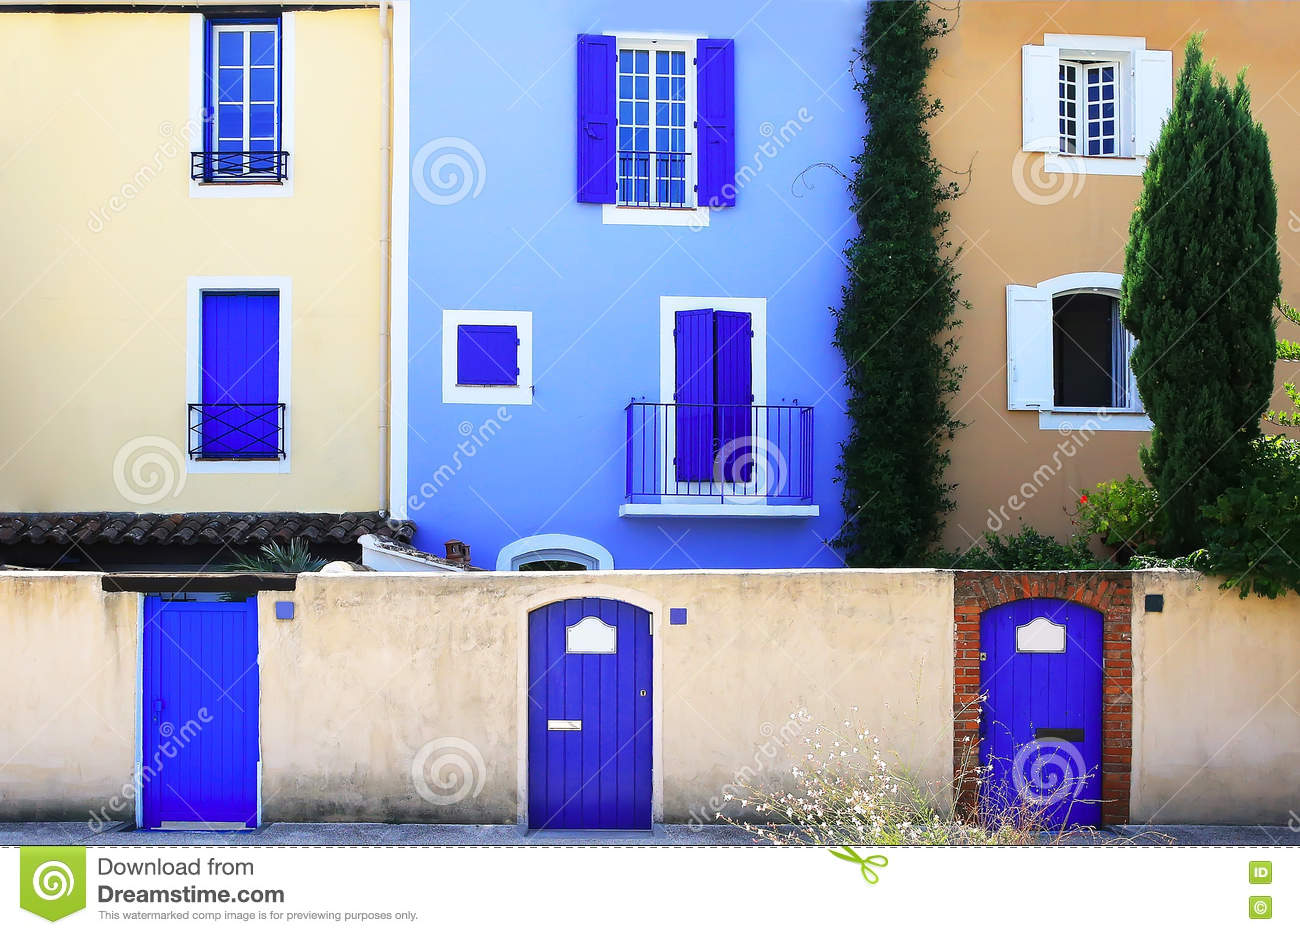 Colorful wall with windows and doors